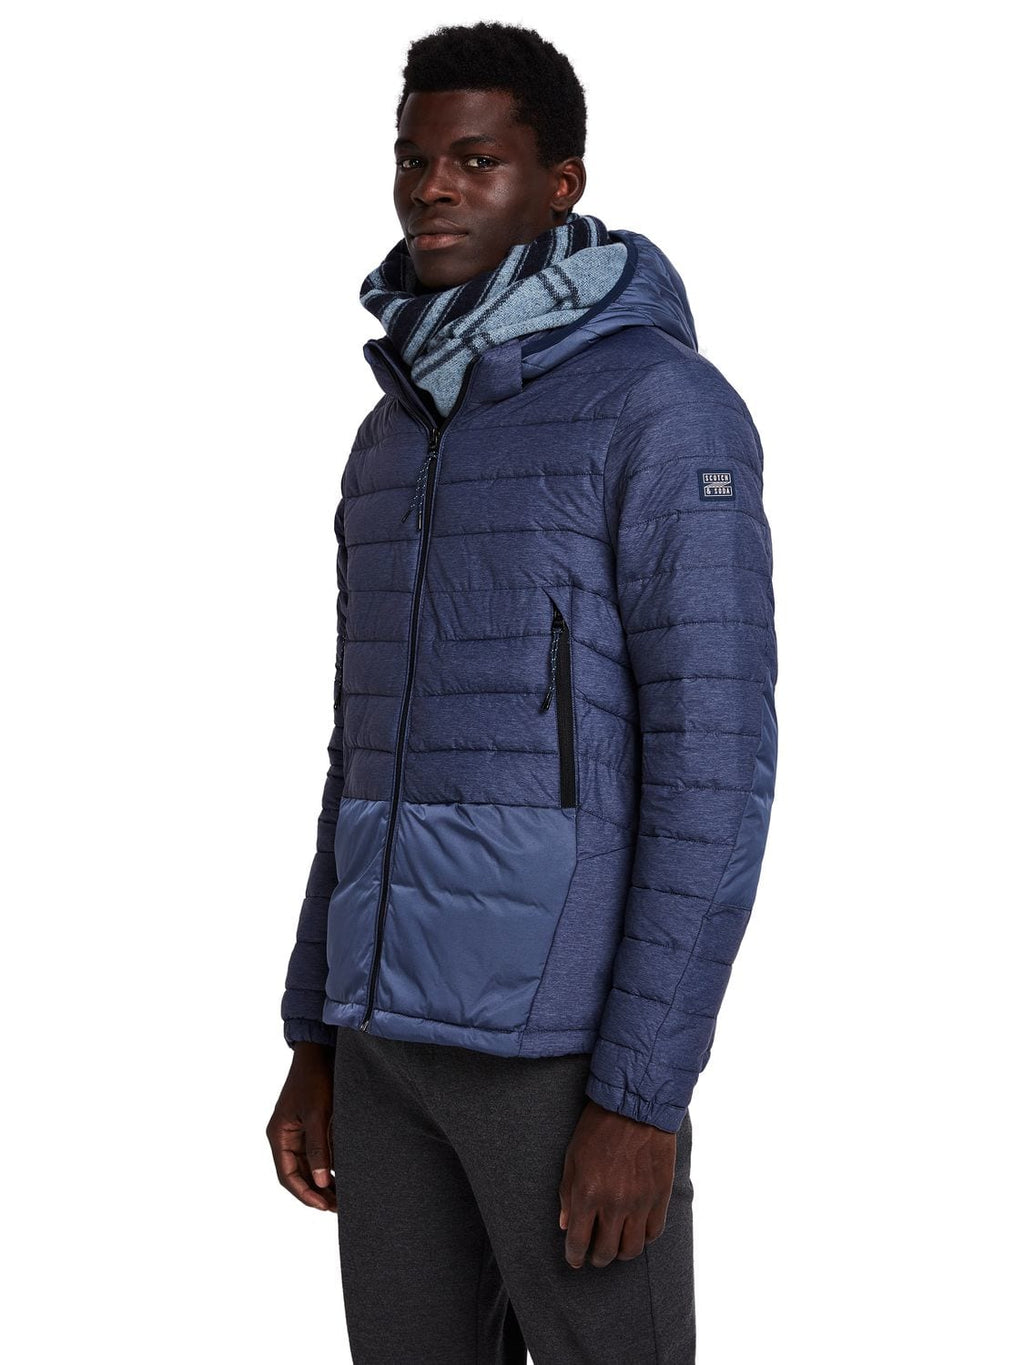 Scotch & Soda Blue Puffer Jacket